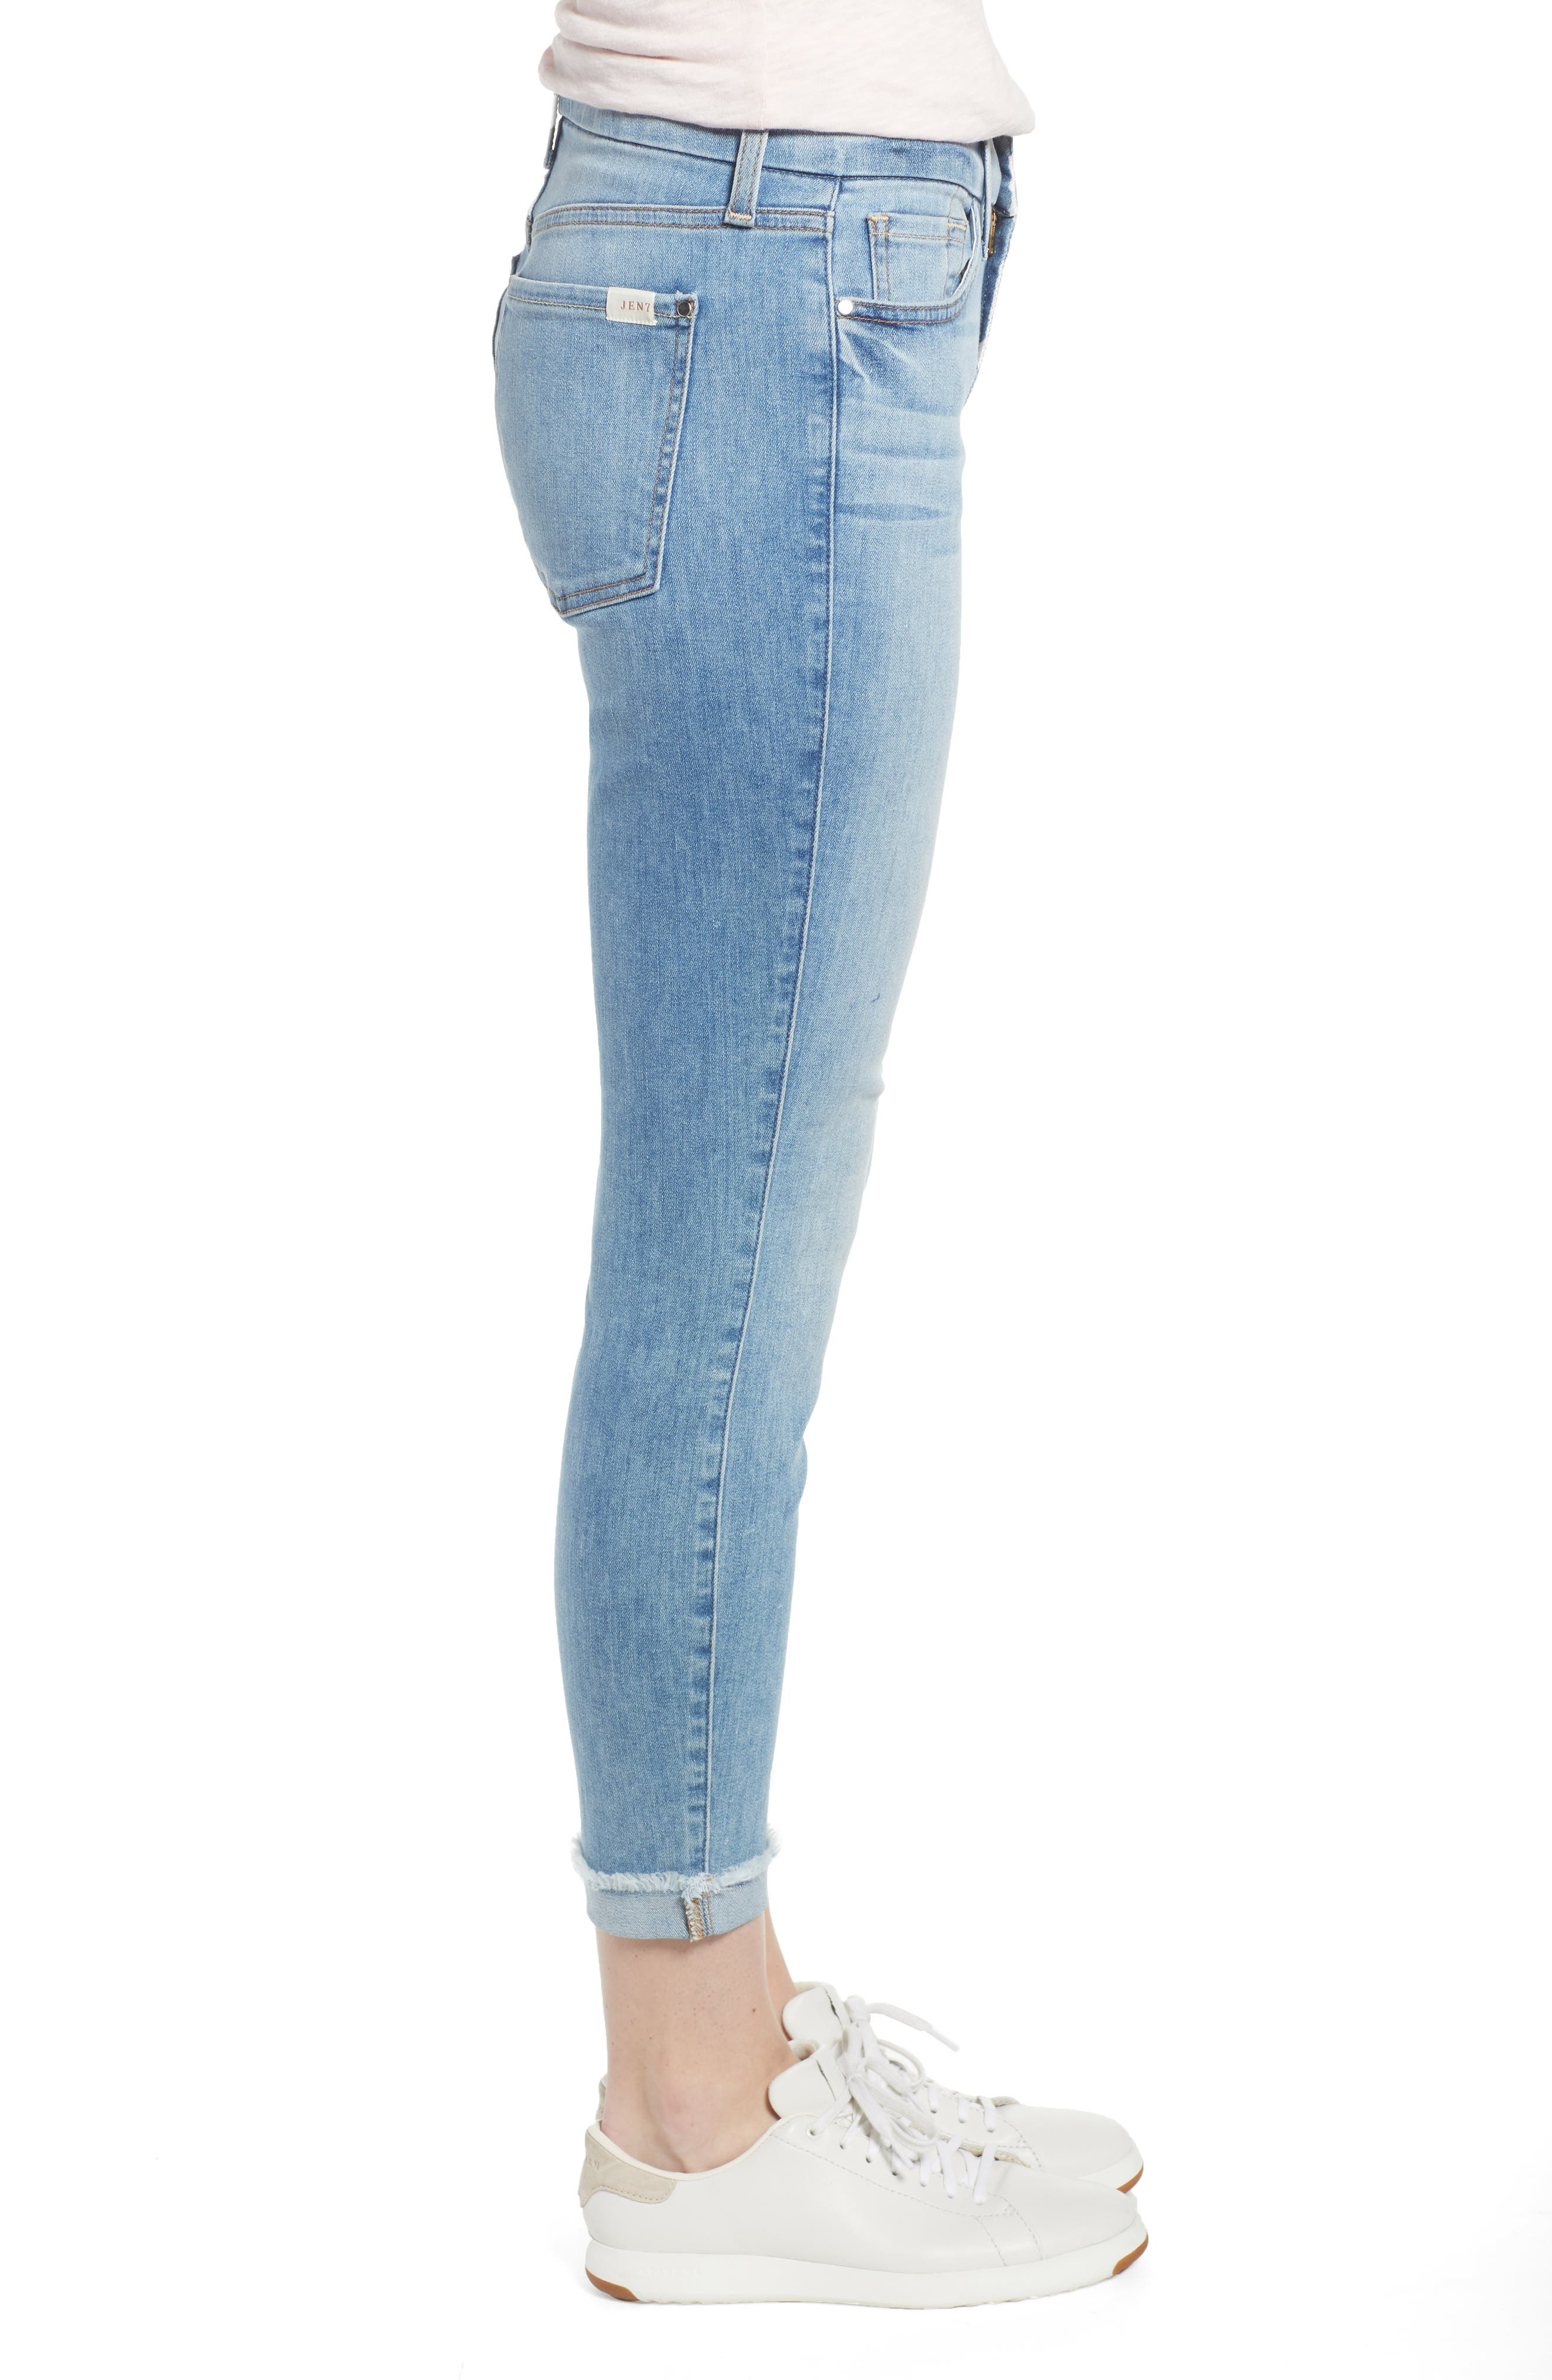 JEN7 BY 7 FOR ALL MANKIND, Cuffed Crop Skinny Jeans, Alternate thumbnail 4, color, LA QUINTA